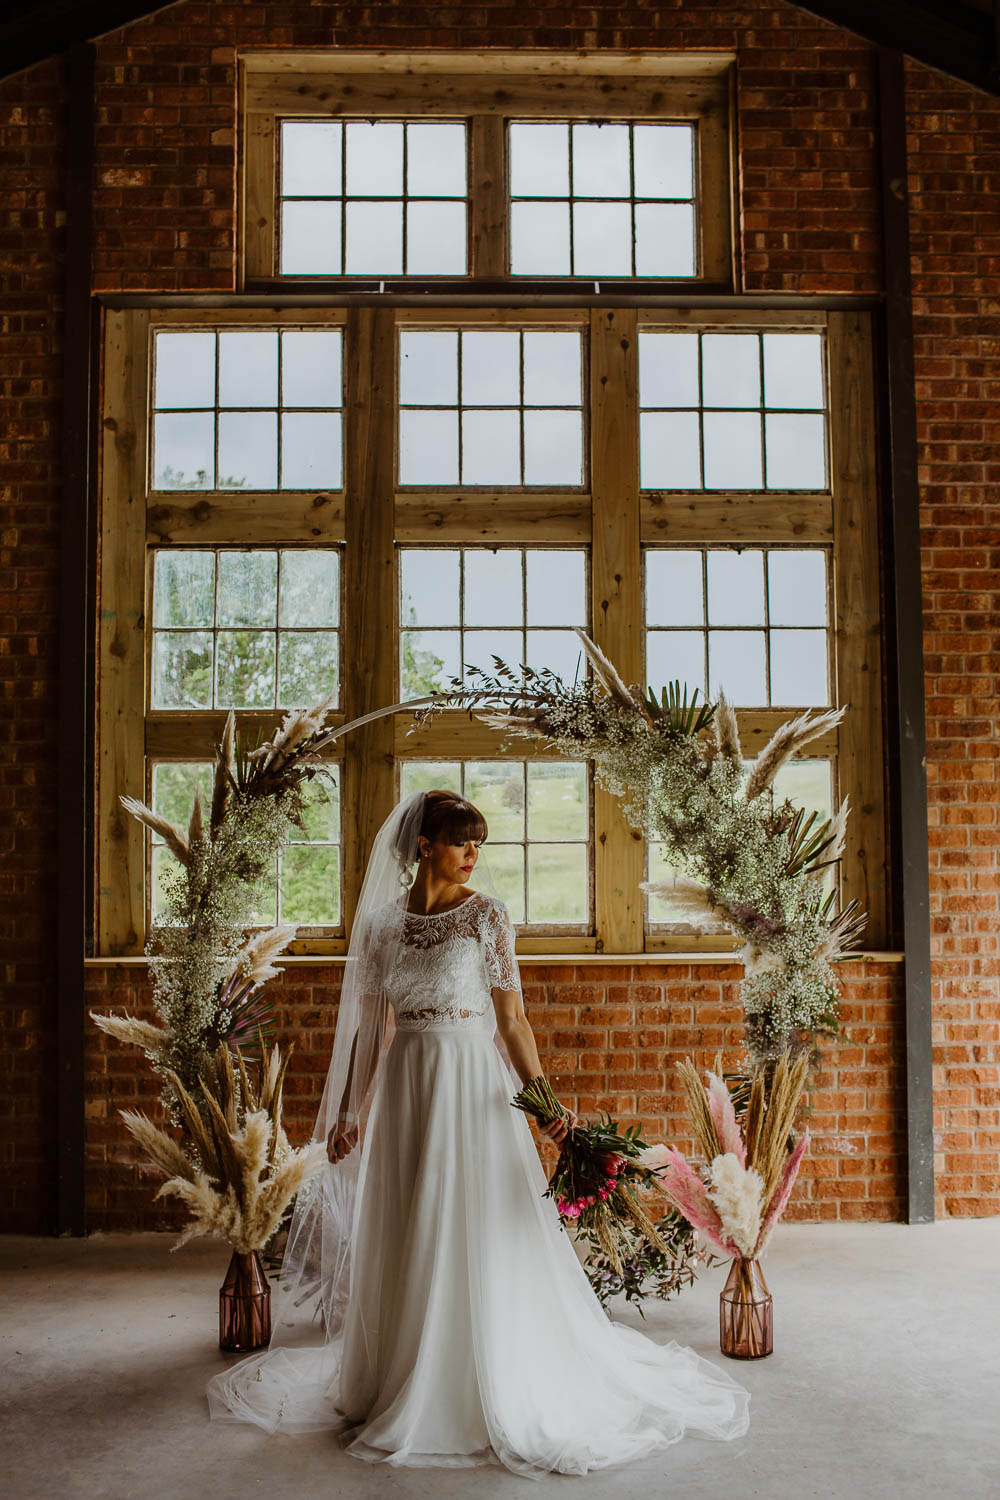 Moon Gate Flower Arch Pampas Grass Backdrop Ceremony Venue Giraffe Shed Wedding When Charlie Met Hannah